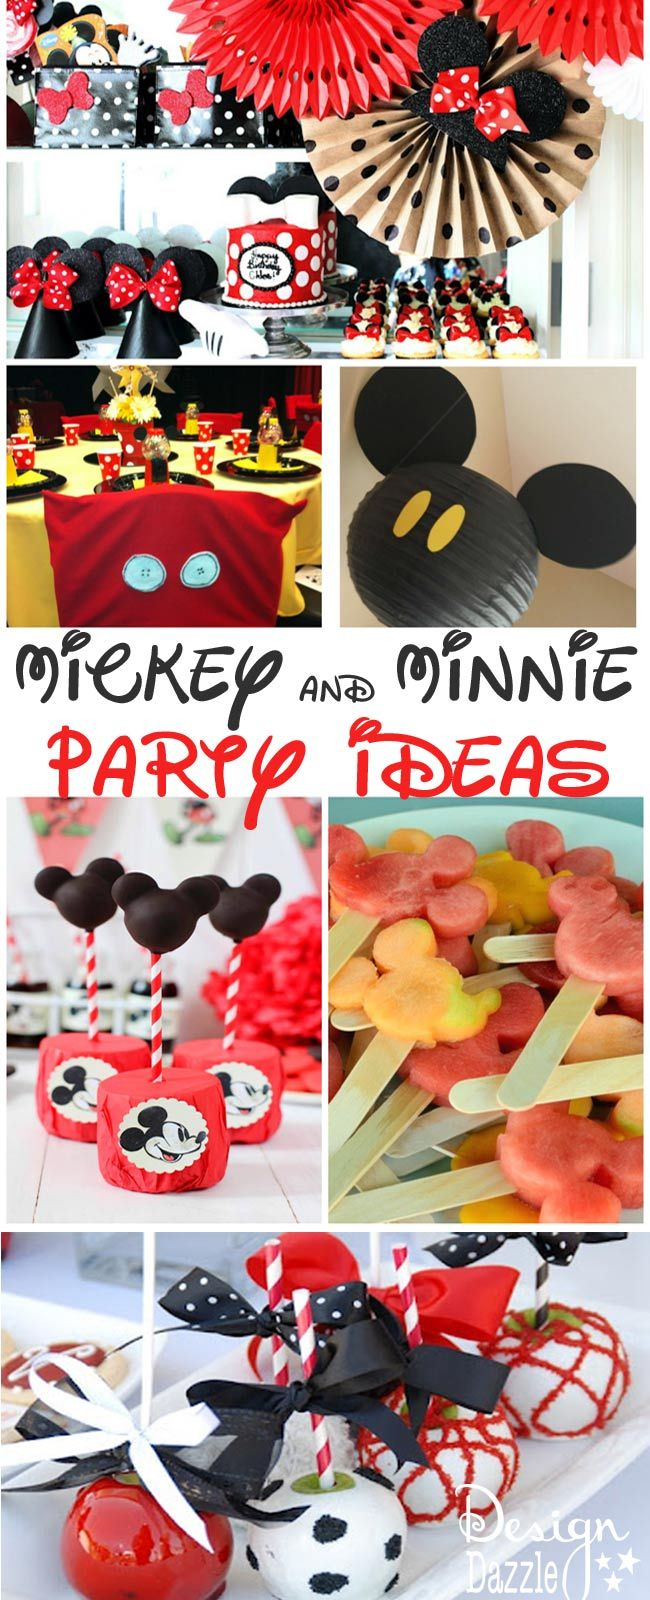 Mickey & Minnie Mouse Party Ideas - Design Dazzle